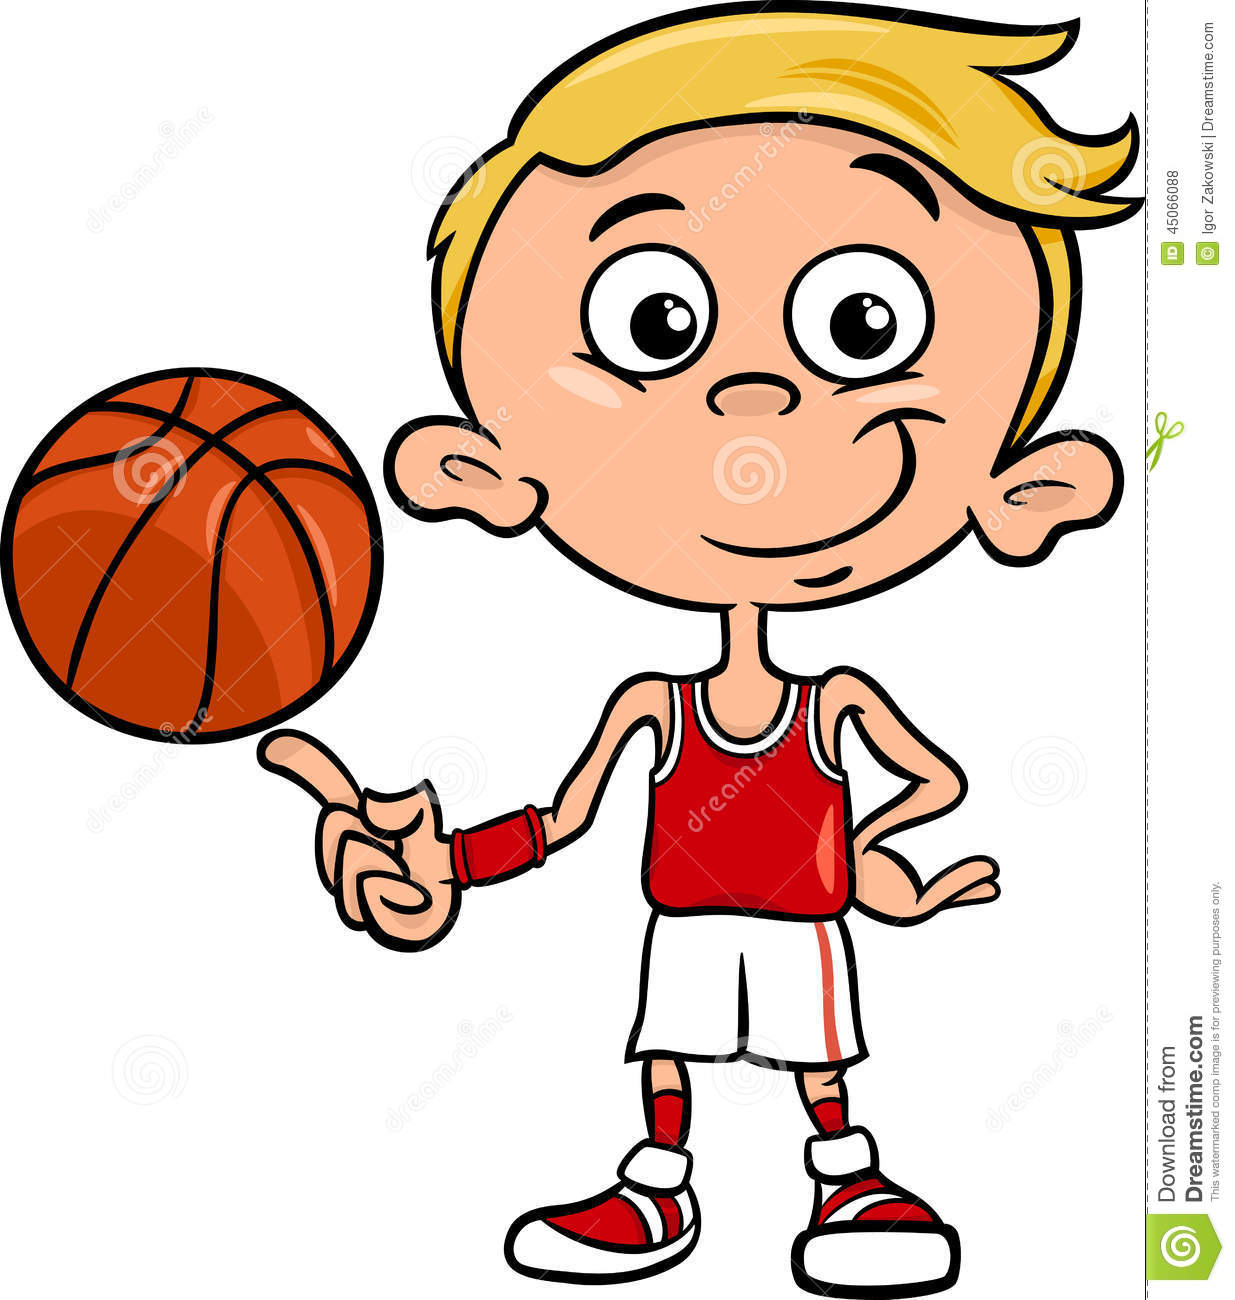 Funny character basketball clipart.